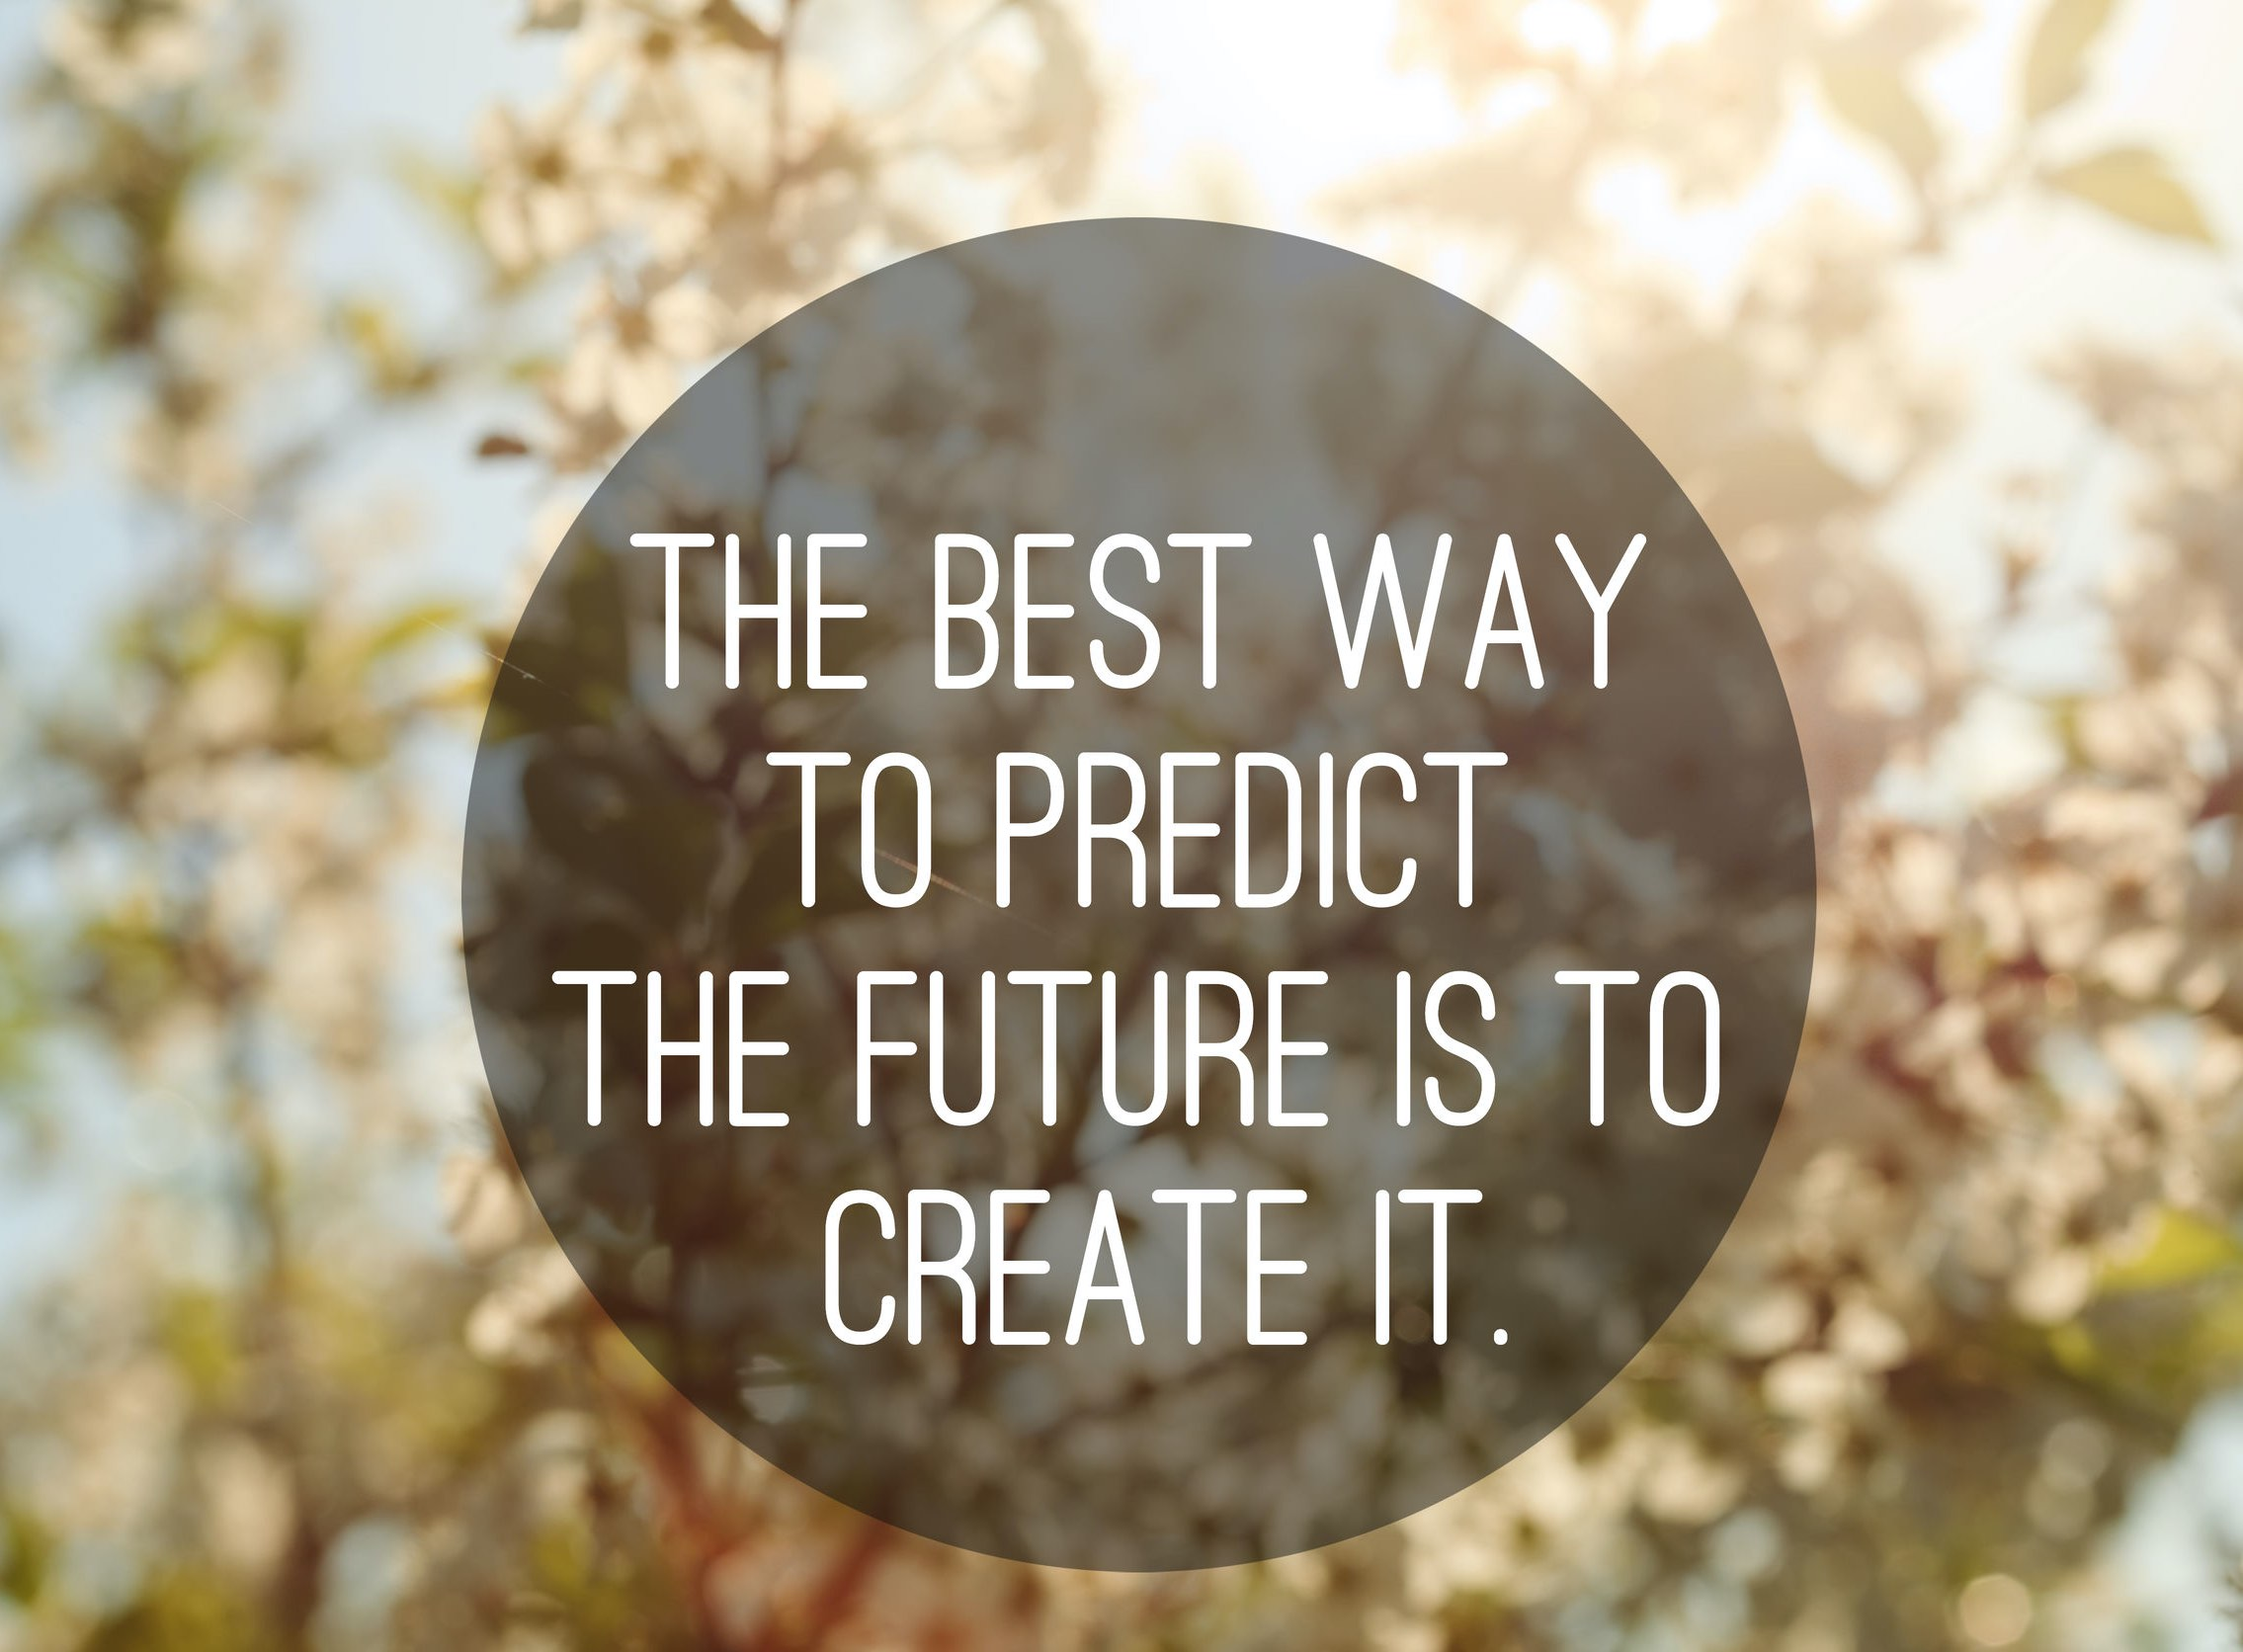 The best way to predict the future is to create it slogan